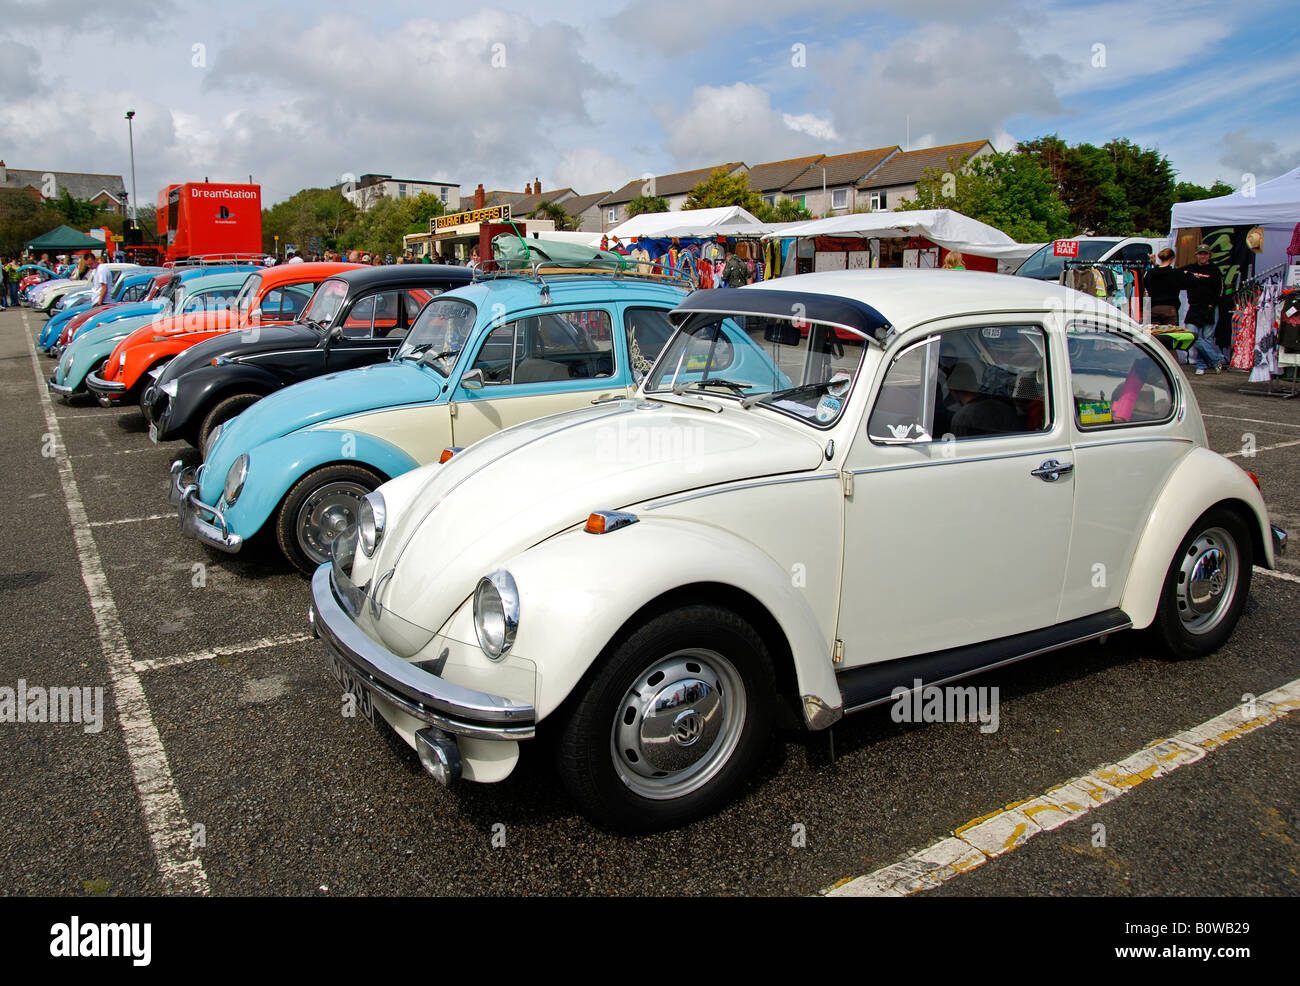 volkswagen beetles on show at the annual 'run to the sun' event at newquay in cornwall,england - Stock Image